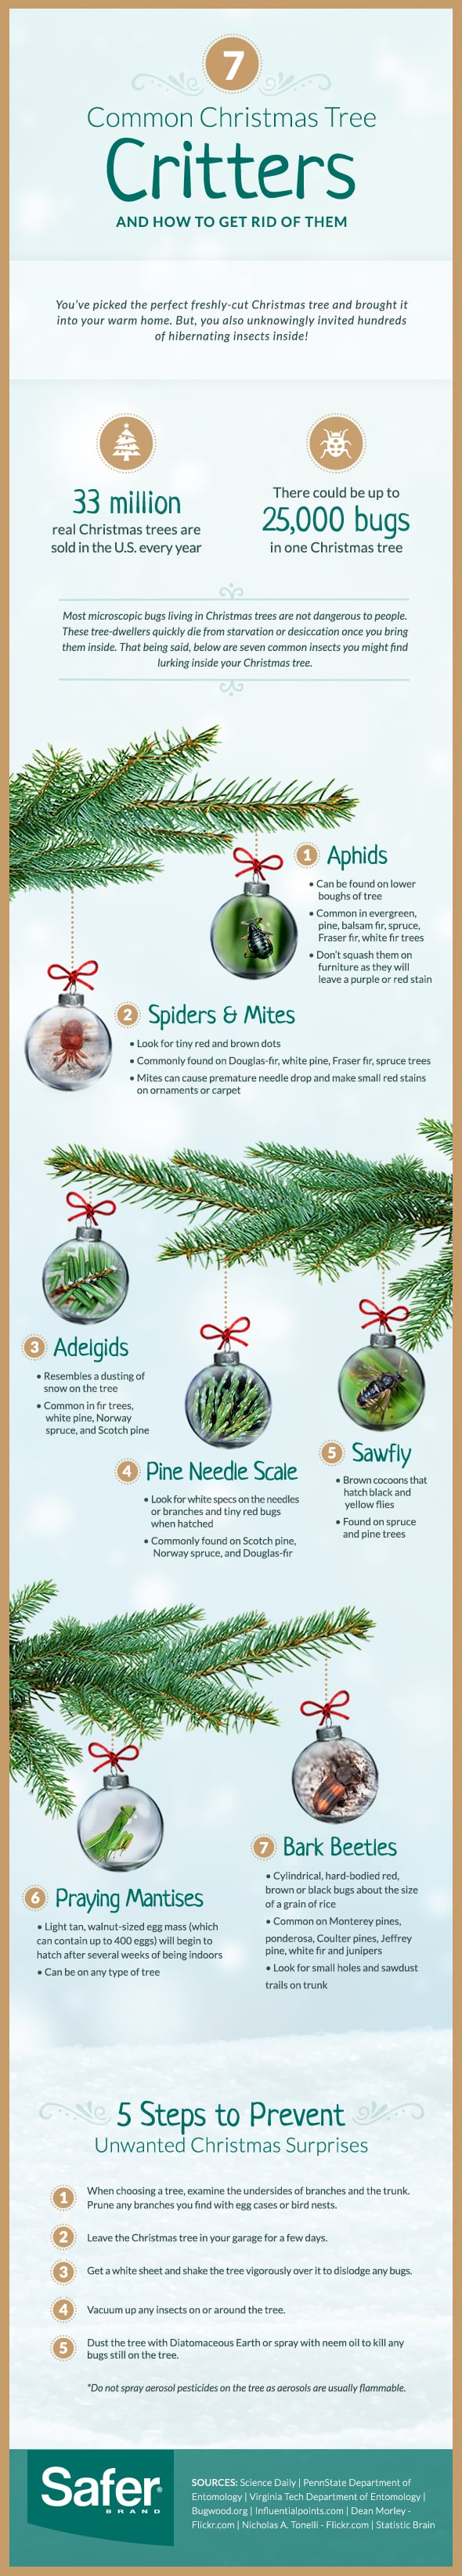 Bugs in Christmas Trees | POPSUGAR Home